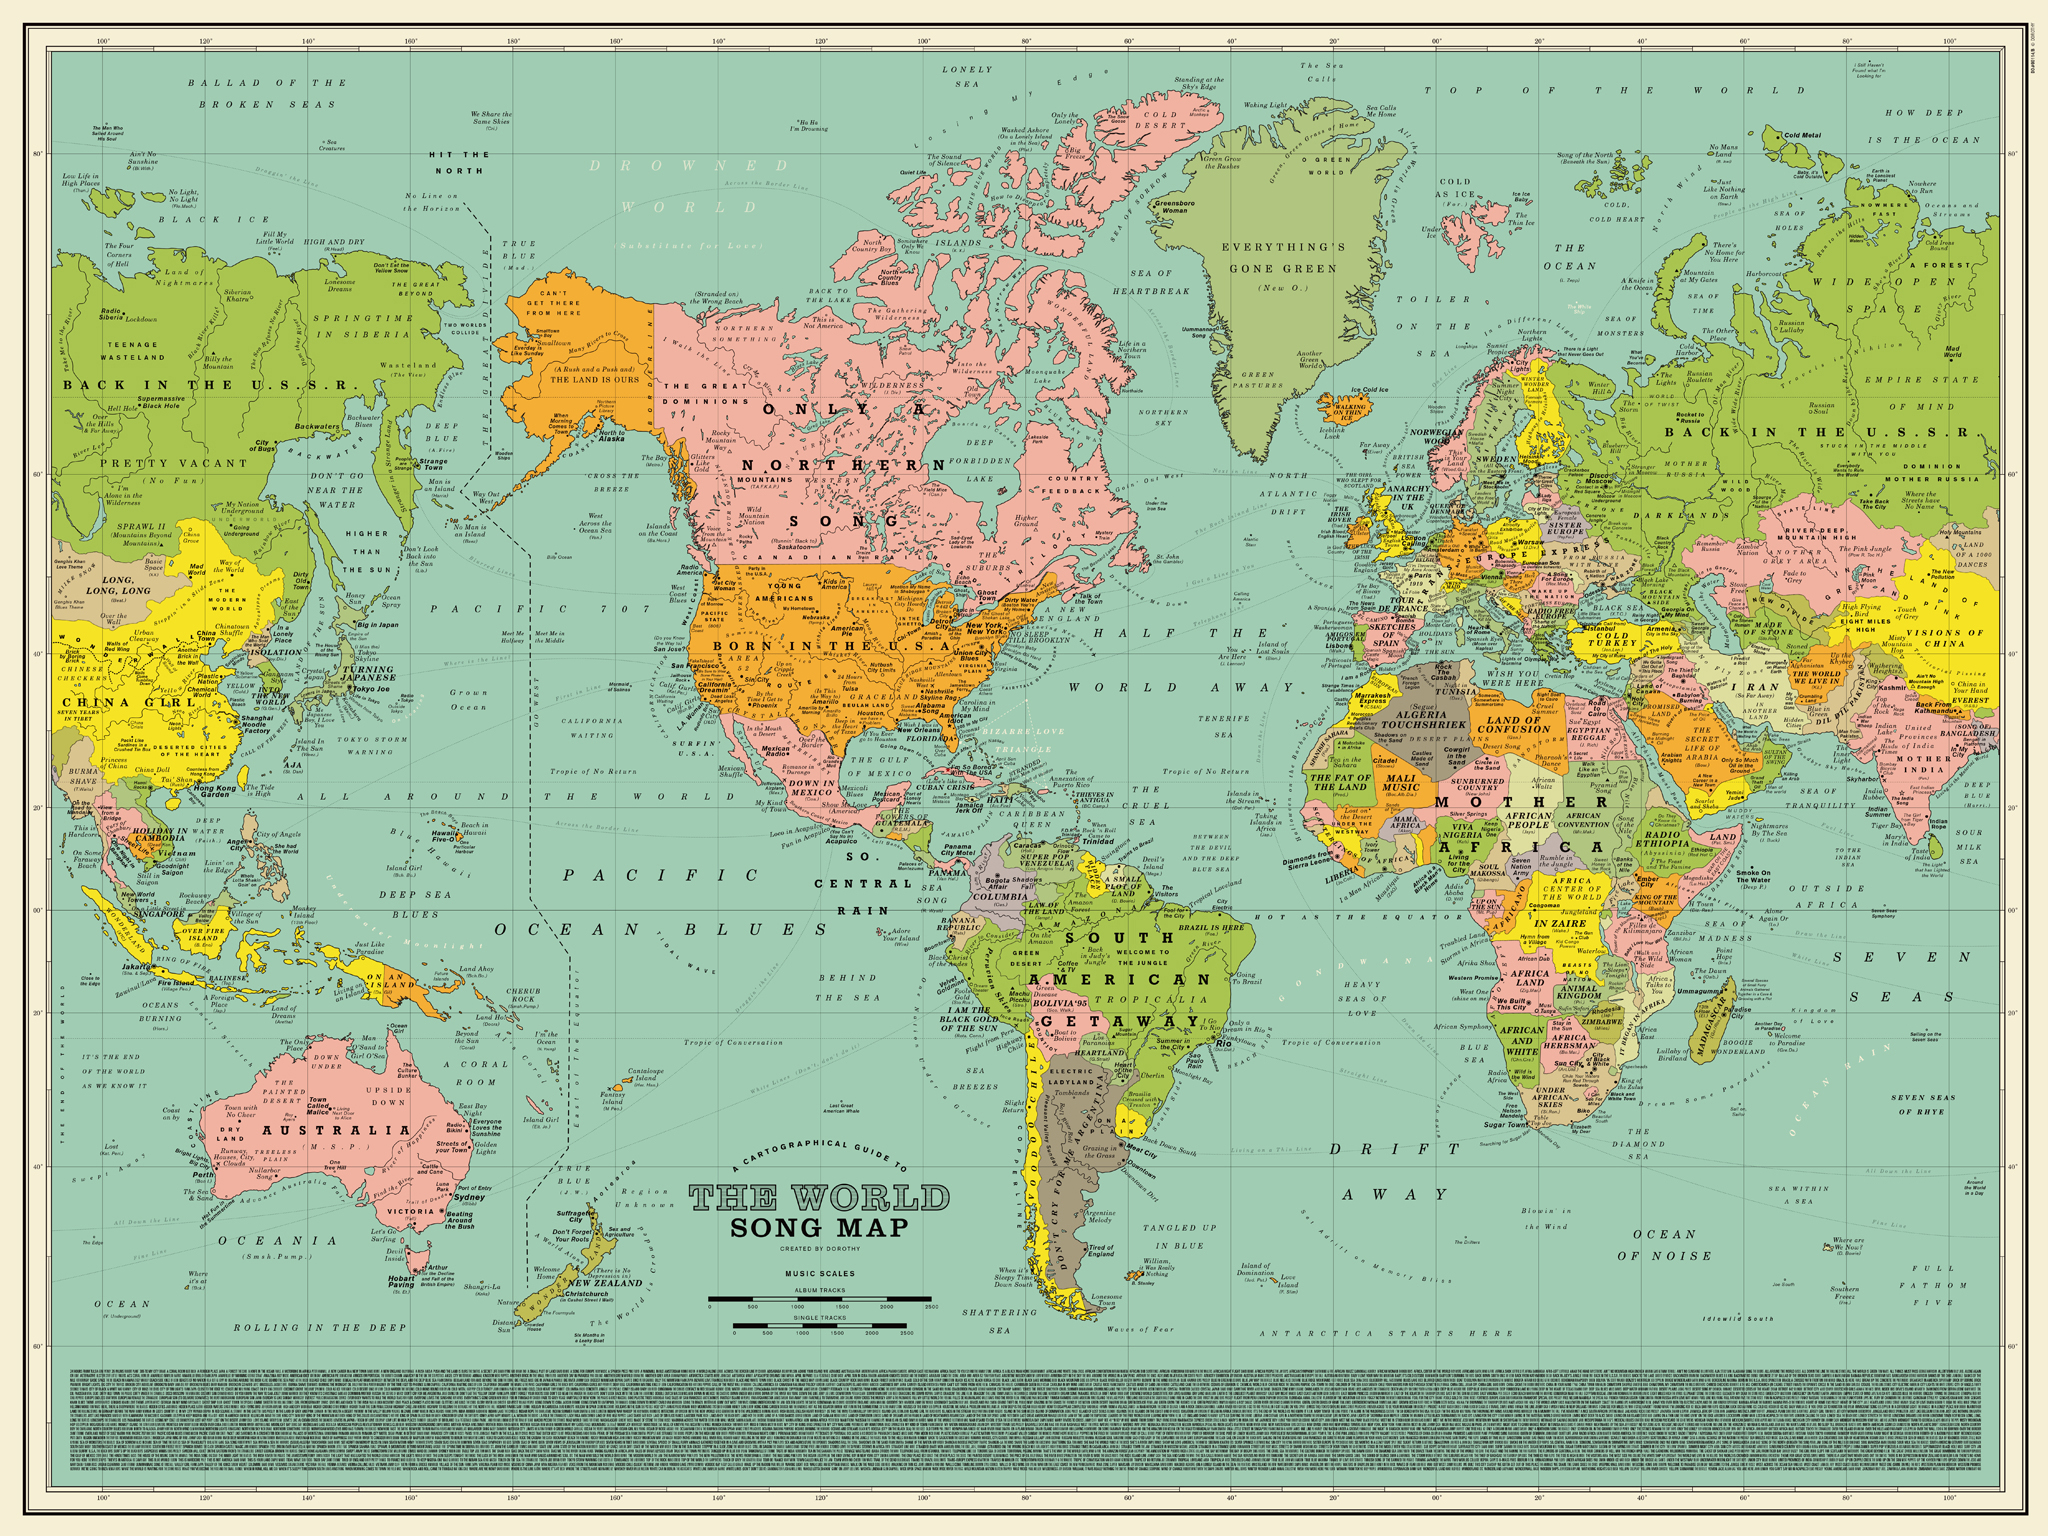 World Song Map A Detailed Poster That Imagines The World Map Made - Eorld map